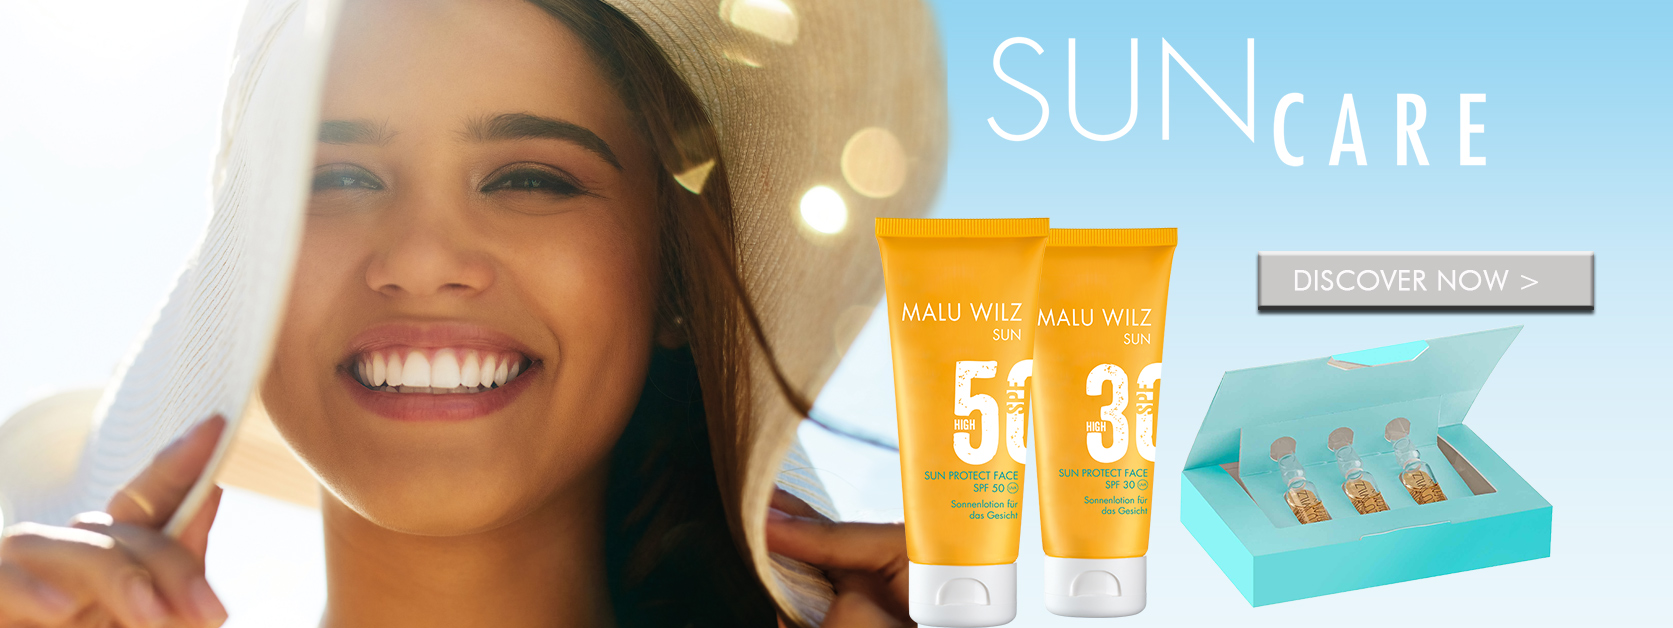 Woman with Sun Care Products